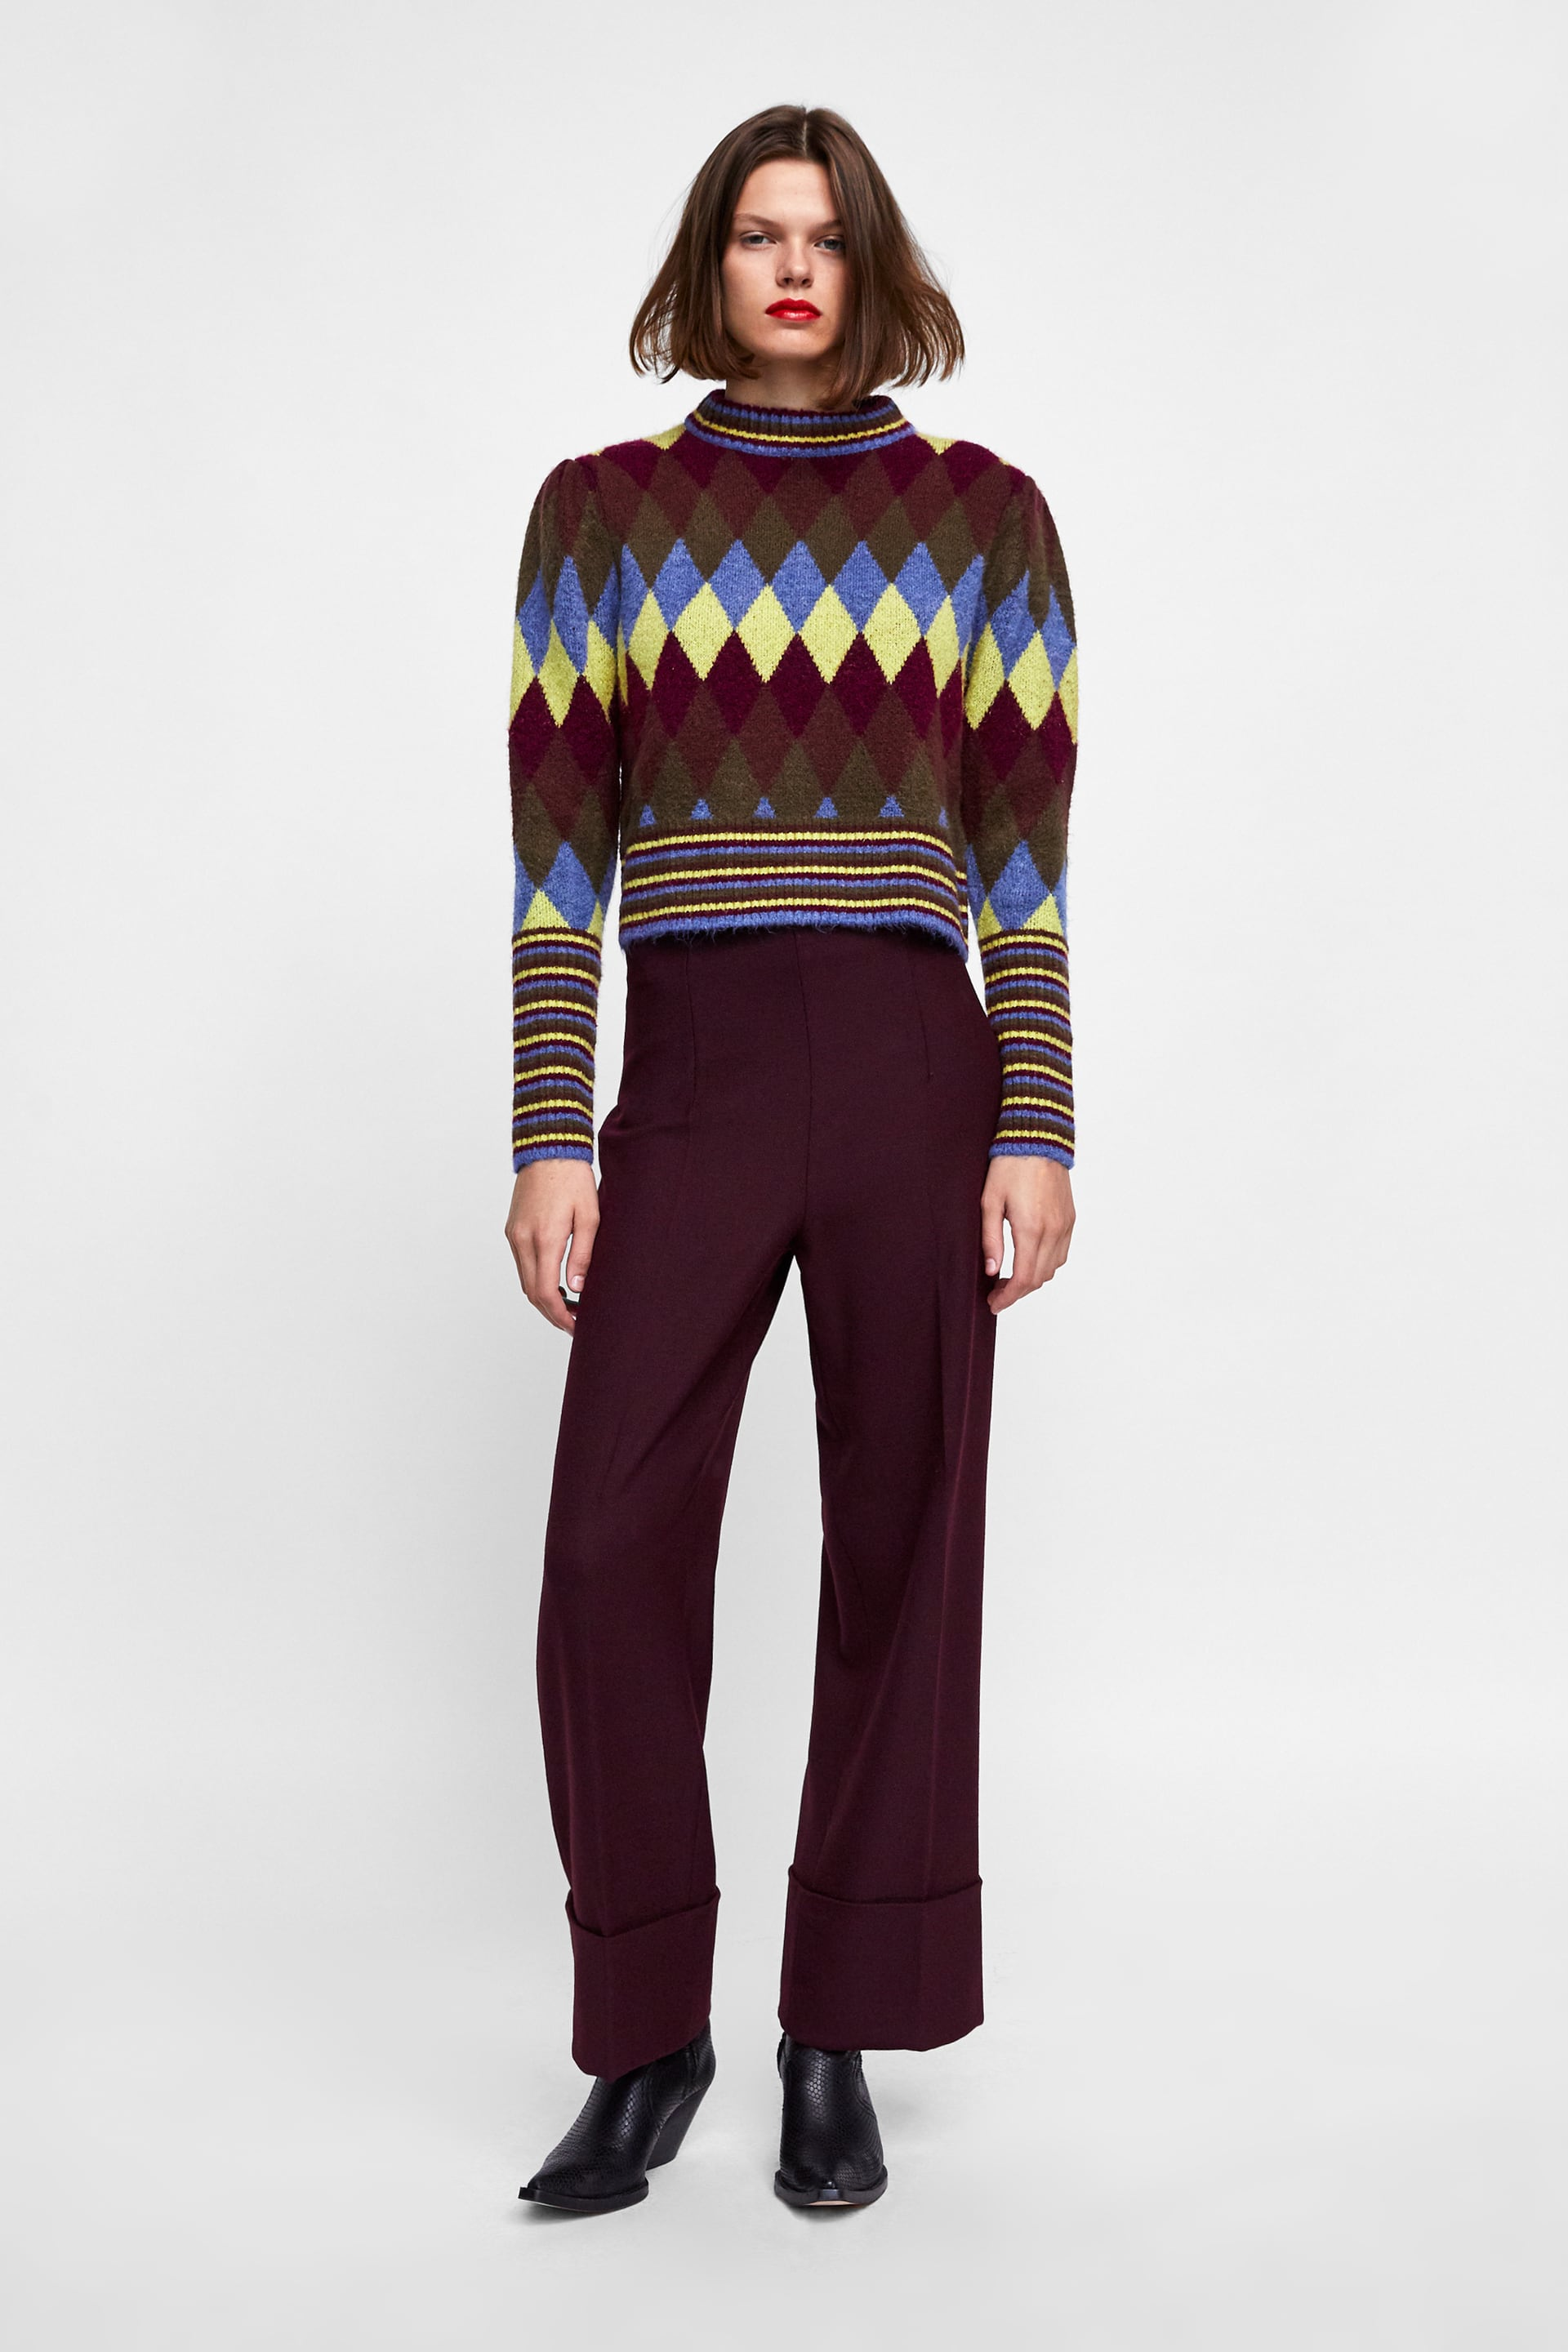 ddbcc2b7ea56 We re Buying All Of Our Sweaters At Zara This Fall+ refinery29